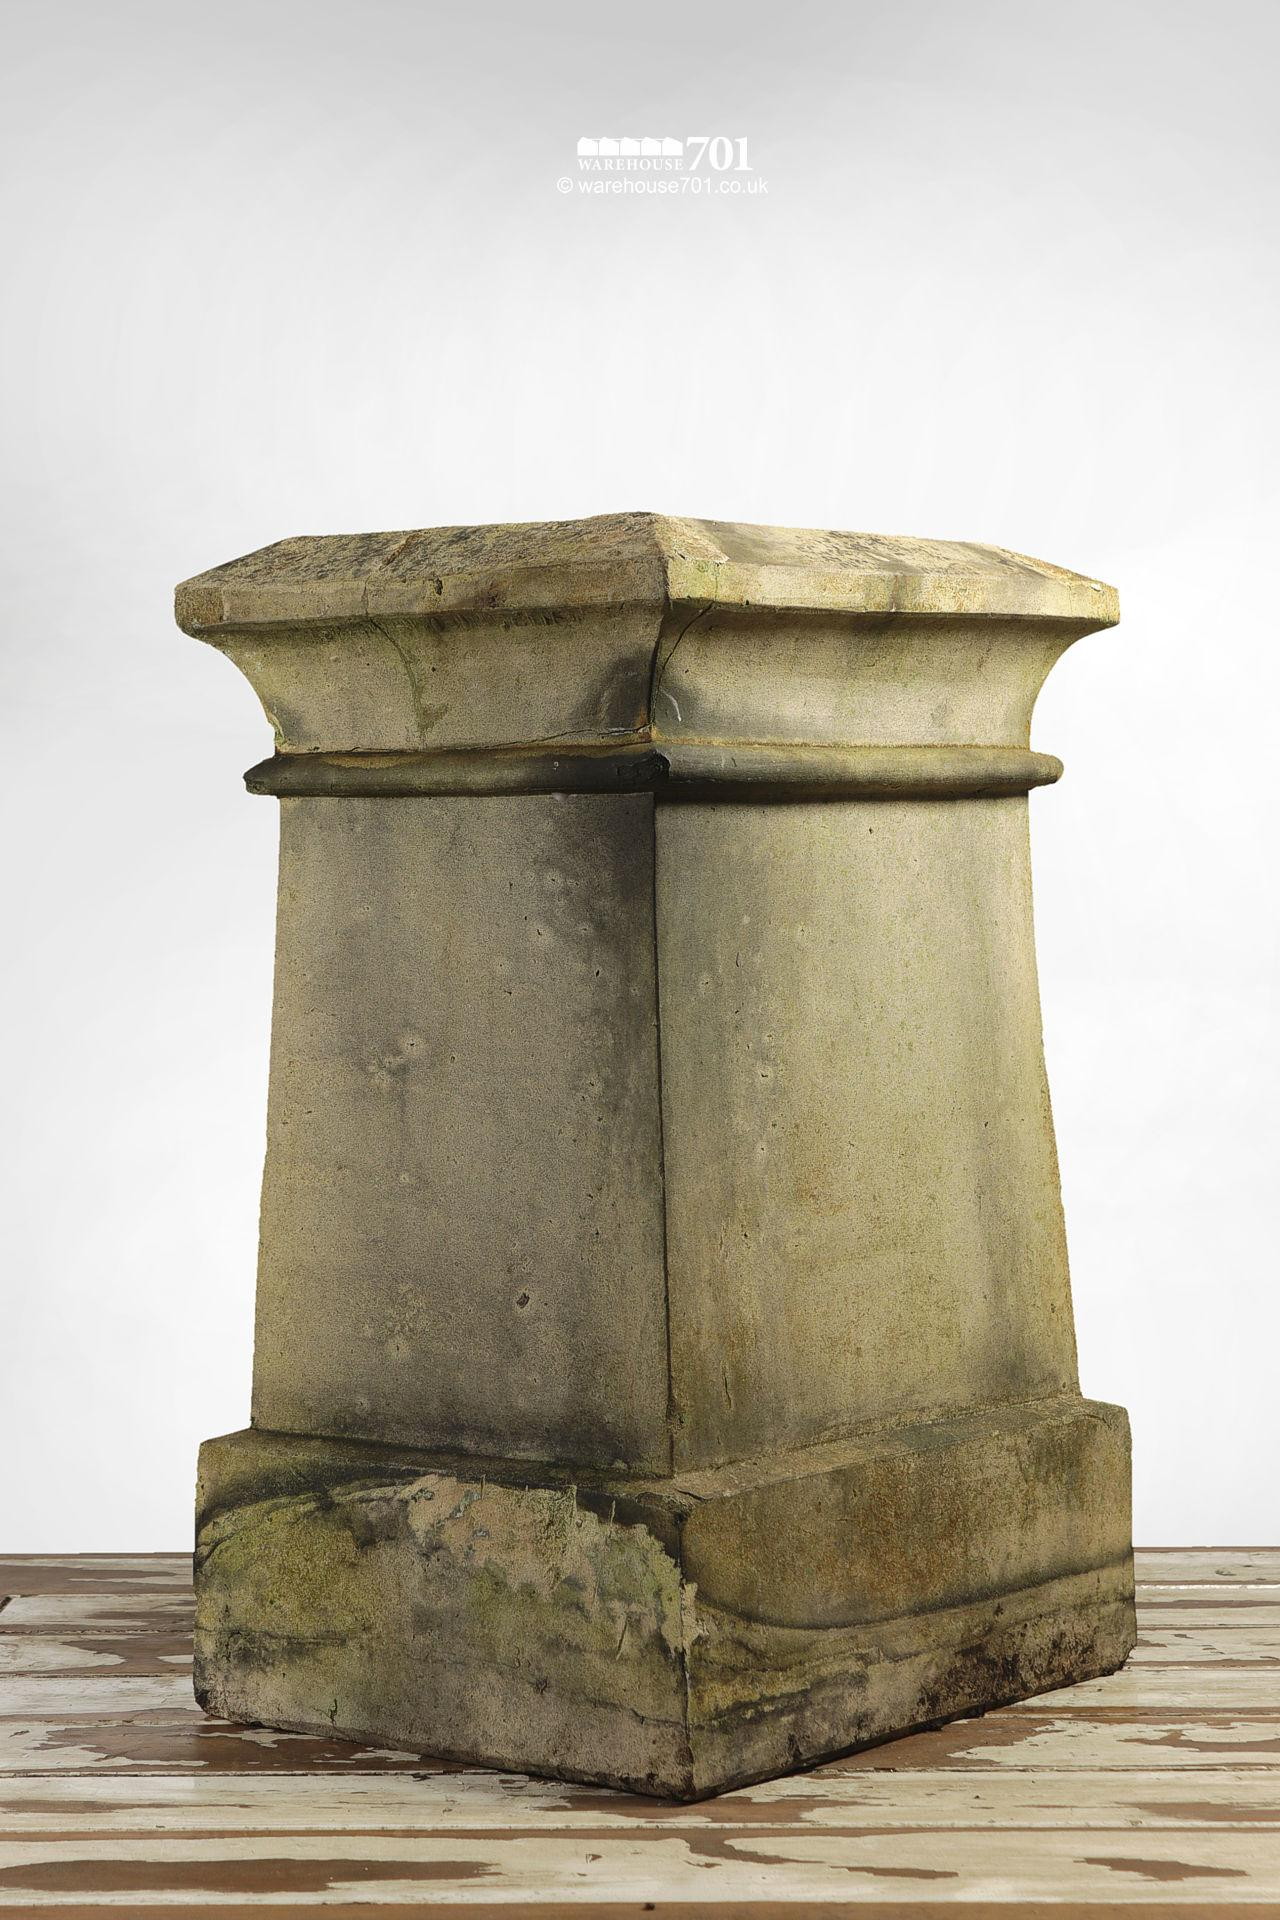 Reclaimed Rectangular Buff or Cream Colour Chimney Pot with Single Rib #2